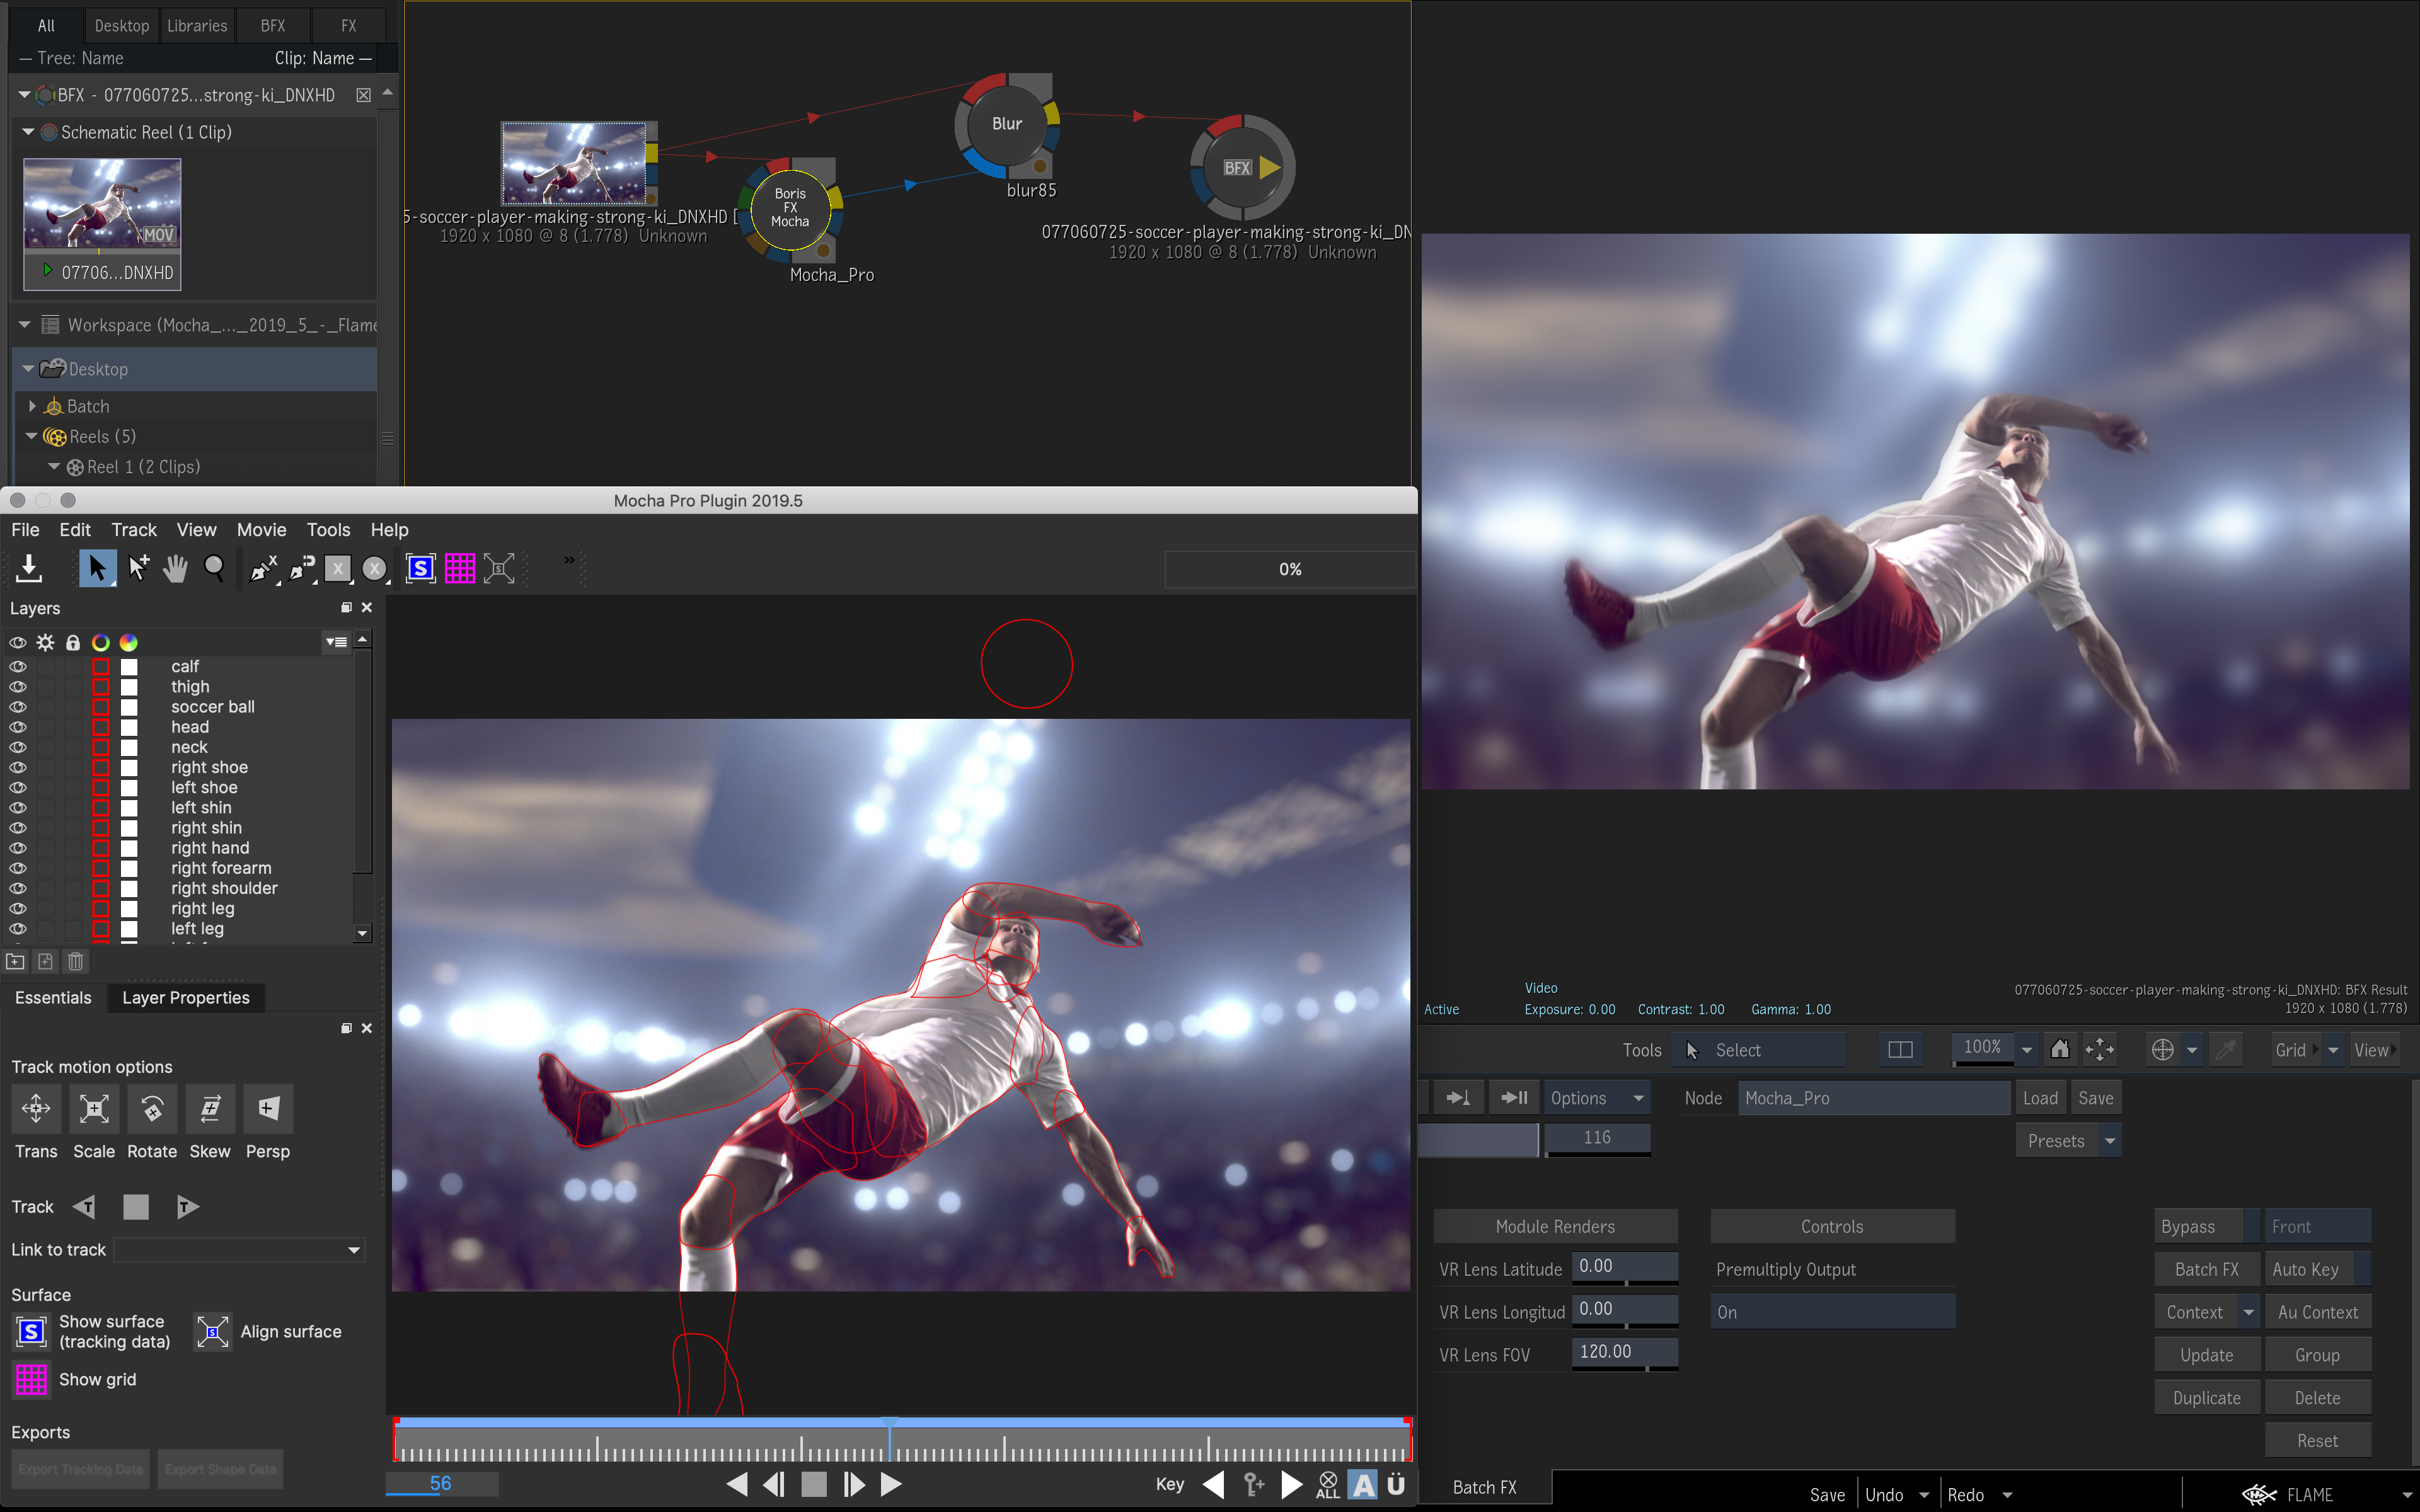 Interface of Mocha Pro 2019.5 plug-in running in Autodesk Flame 2020